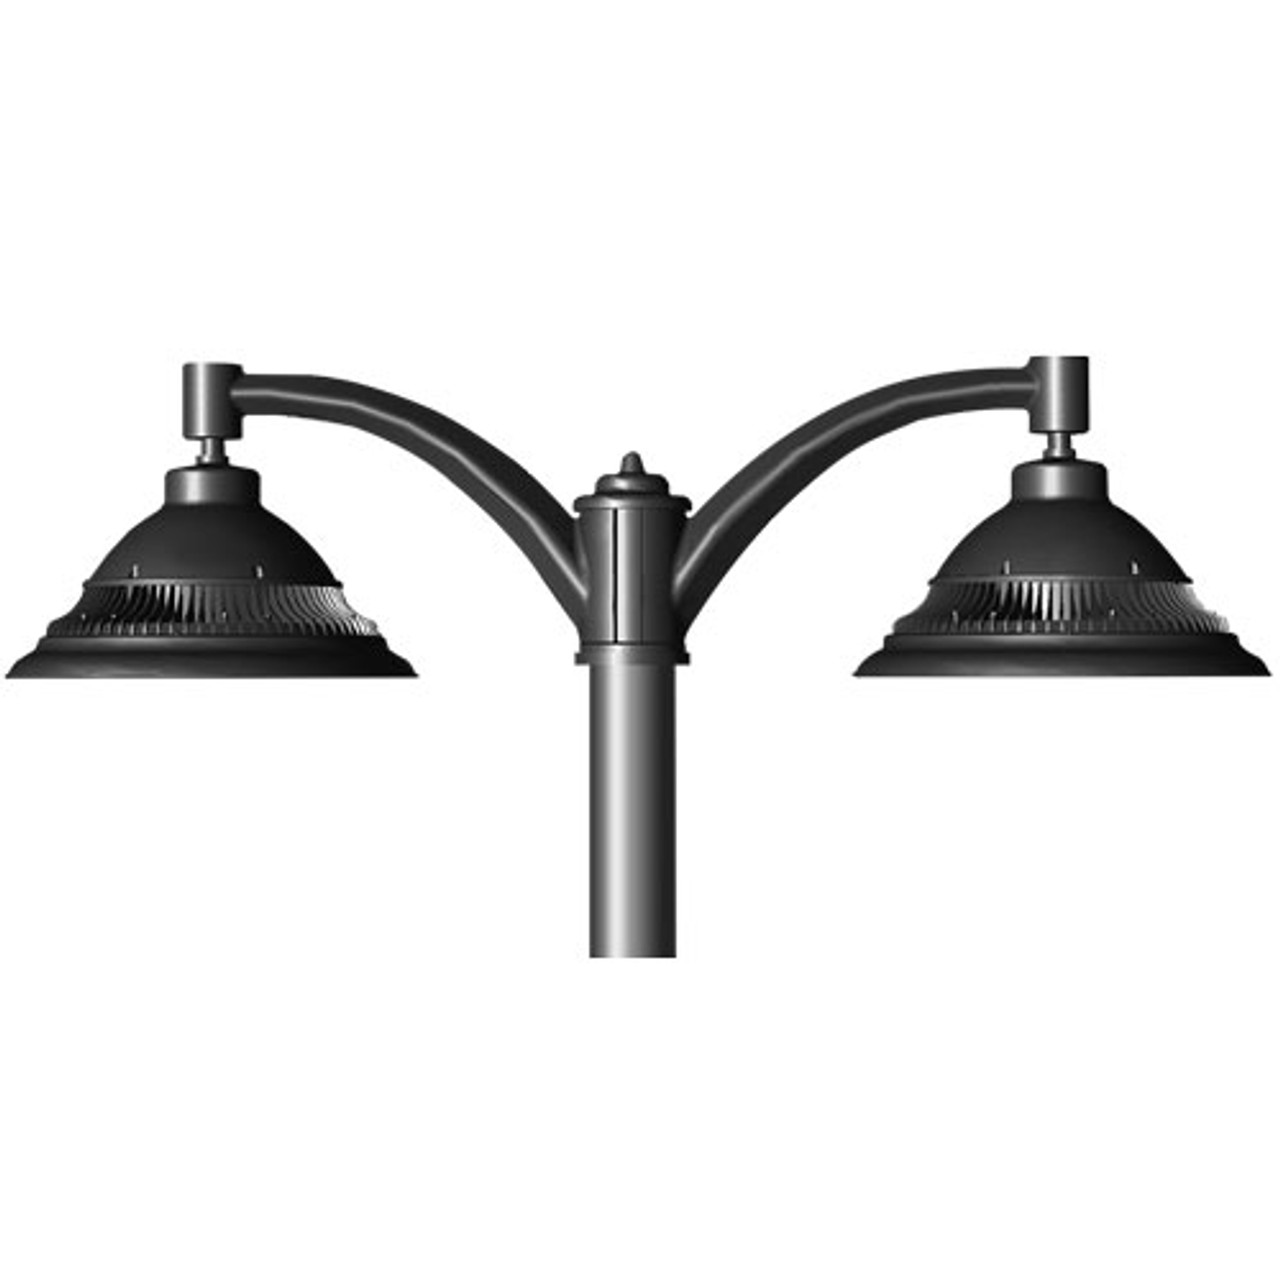 Bell 2 x 65 Watt Pendant LED Decorative Pole Mounted